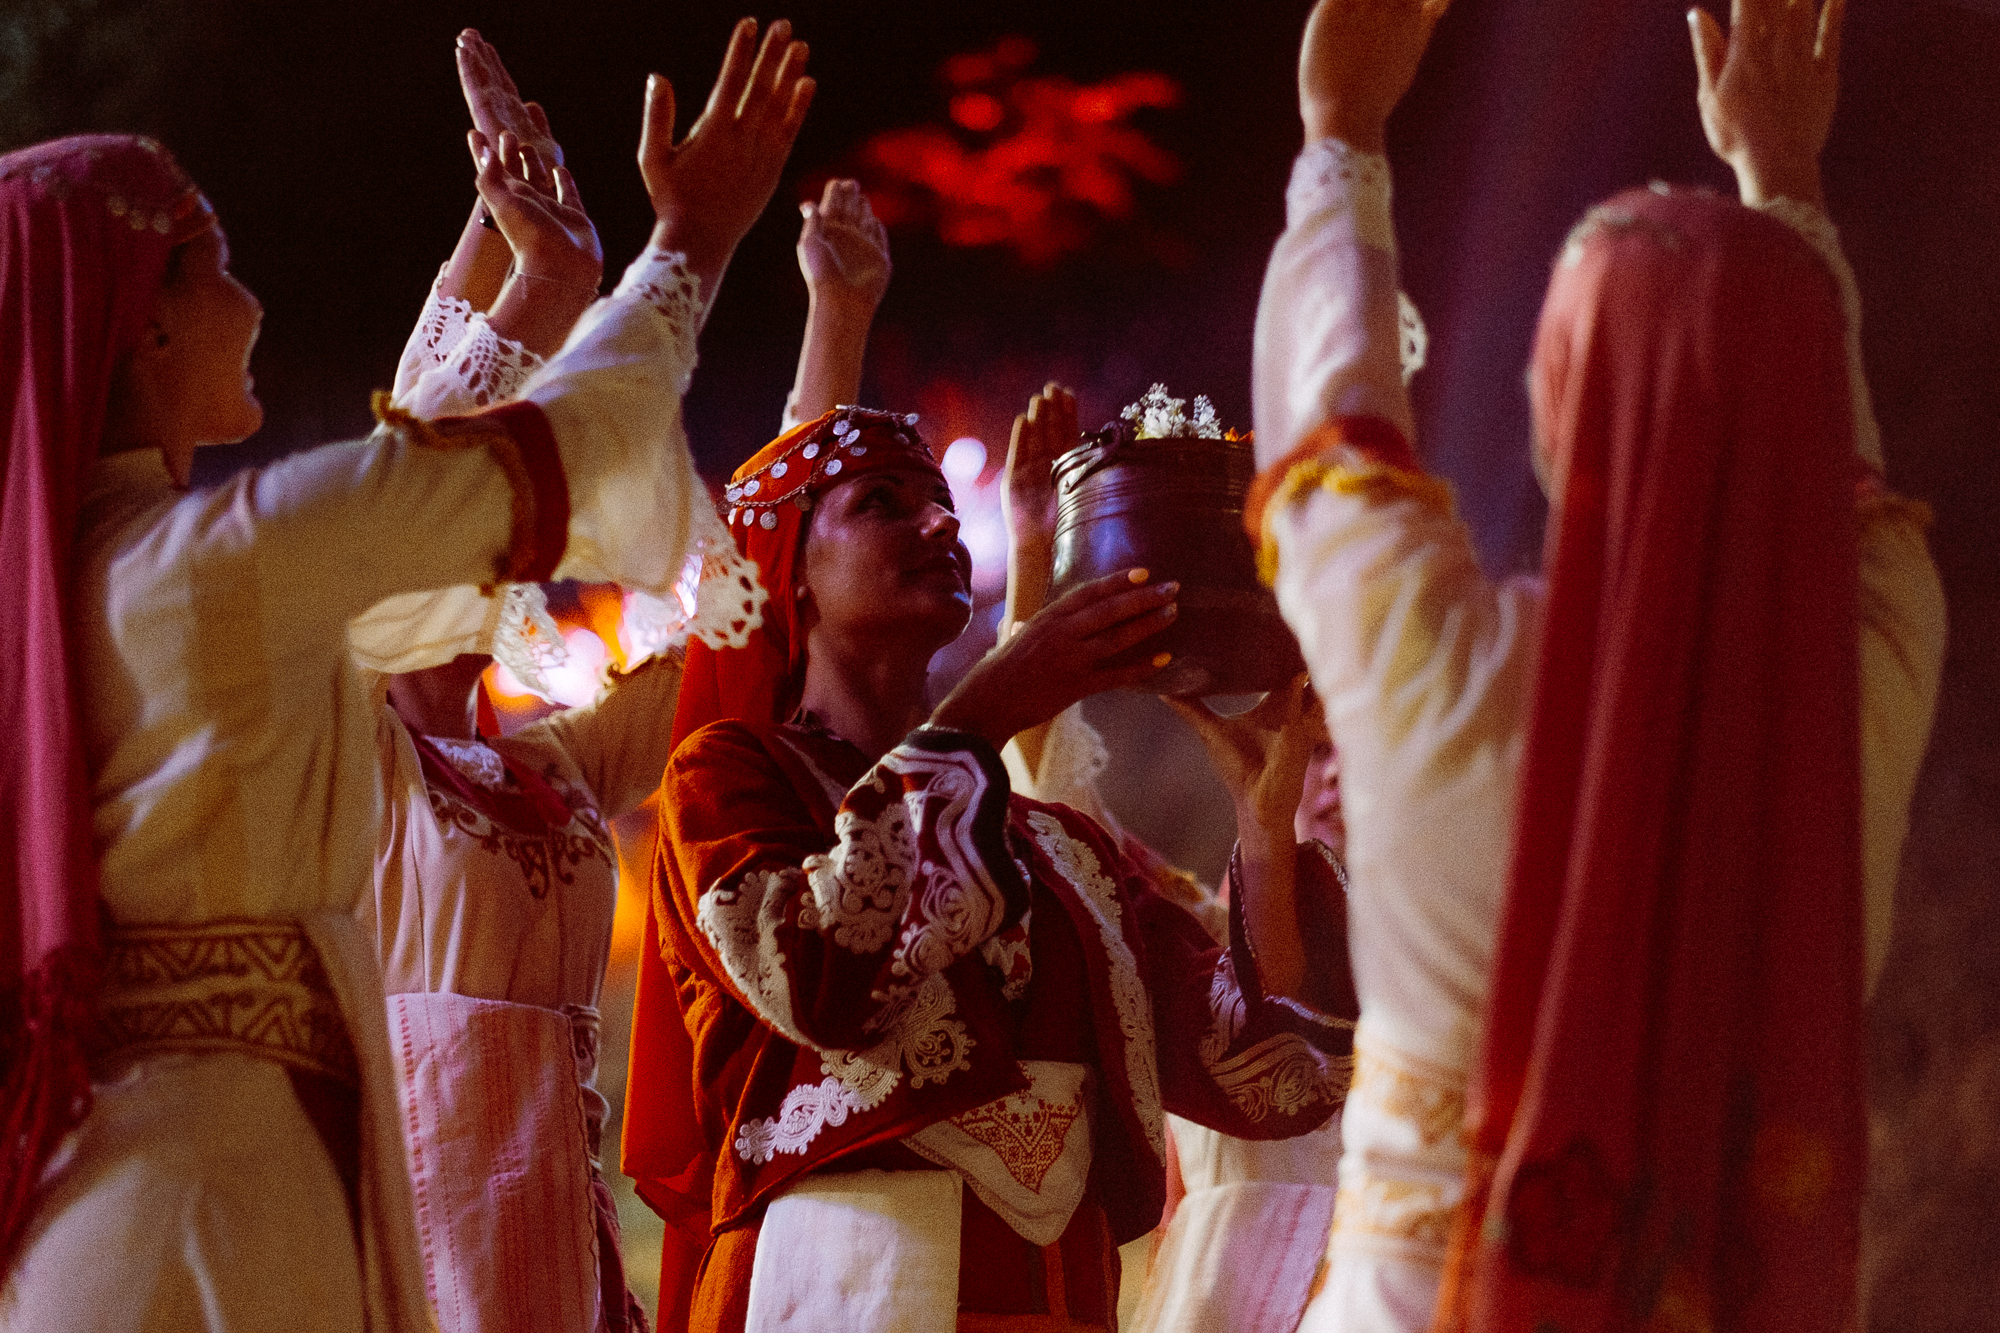 RITUAL GATHERINGS - Ritual Gatherings is an initiative for sustaining and promoting ethnic rituals, music, arts, crafts, ancestral wisdom and cultural heritage through a and a series of grass-root events and media formats.